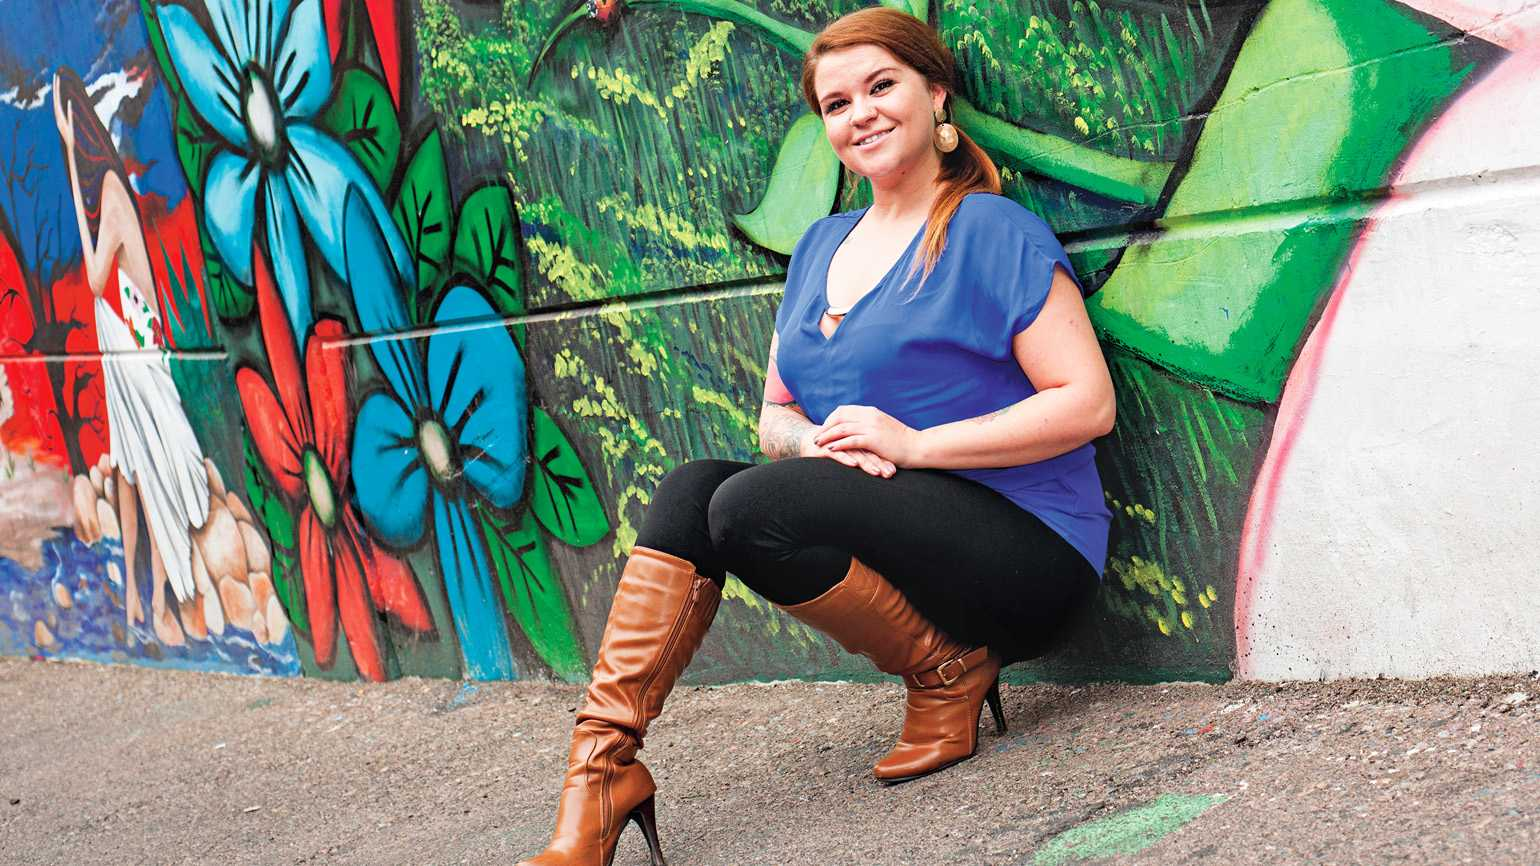 Lindsay Day-Walker sitting against a colorful mural on a brick wall.